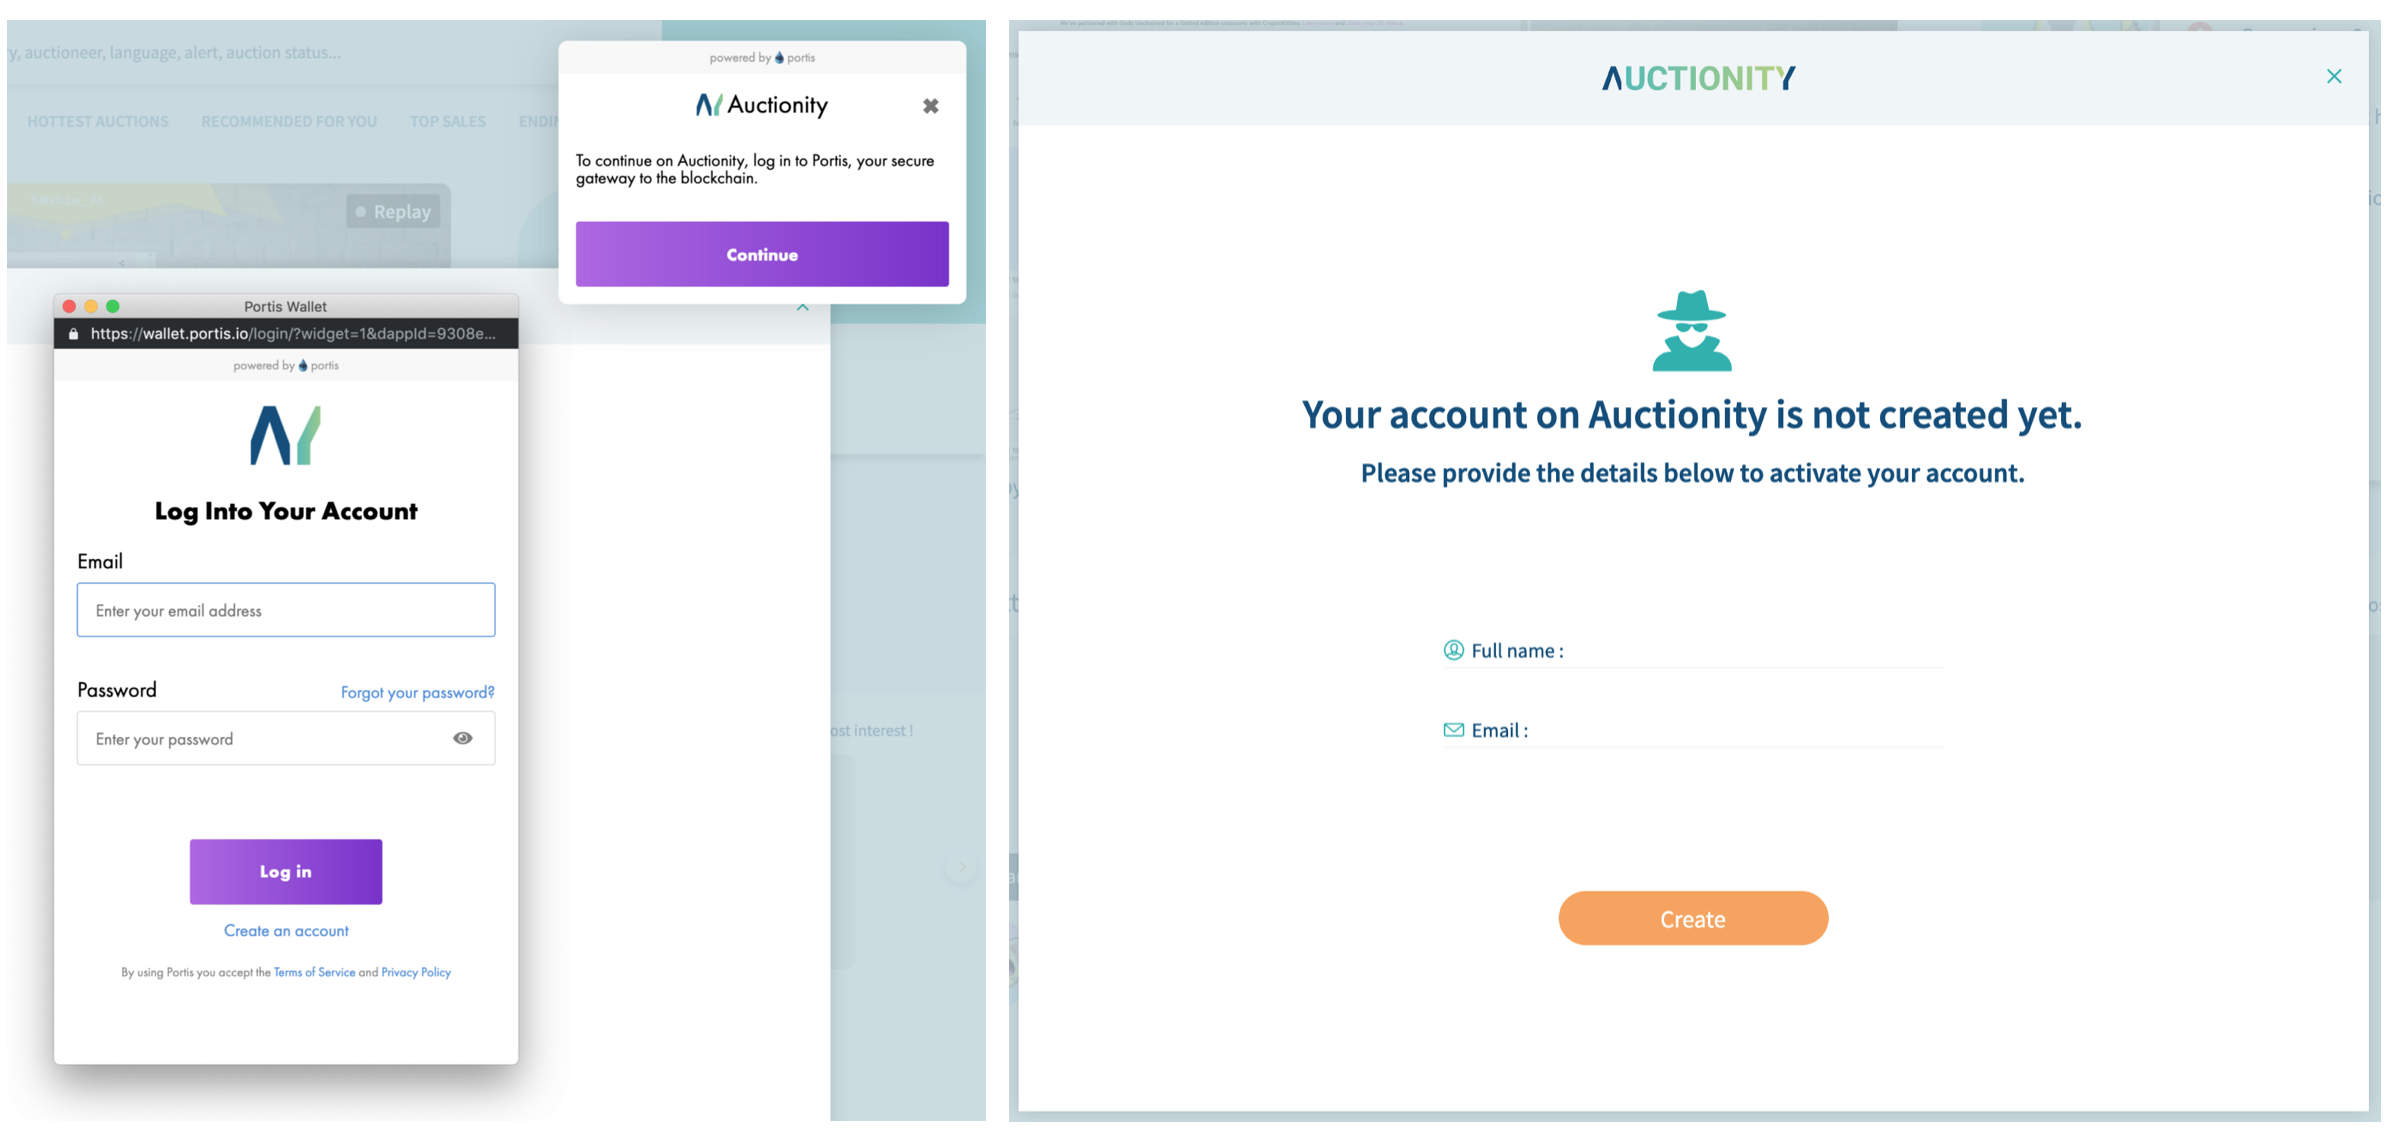 Create an account on Auctionity